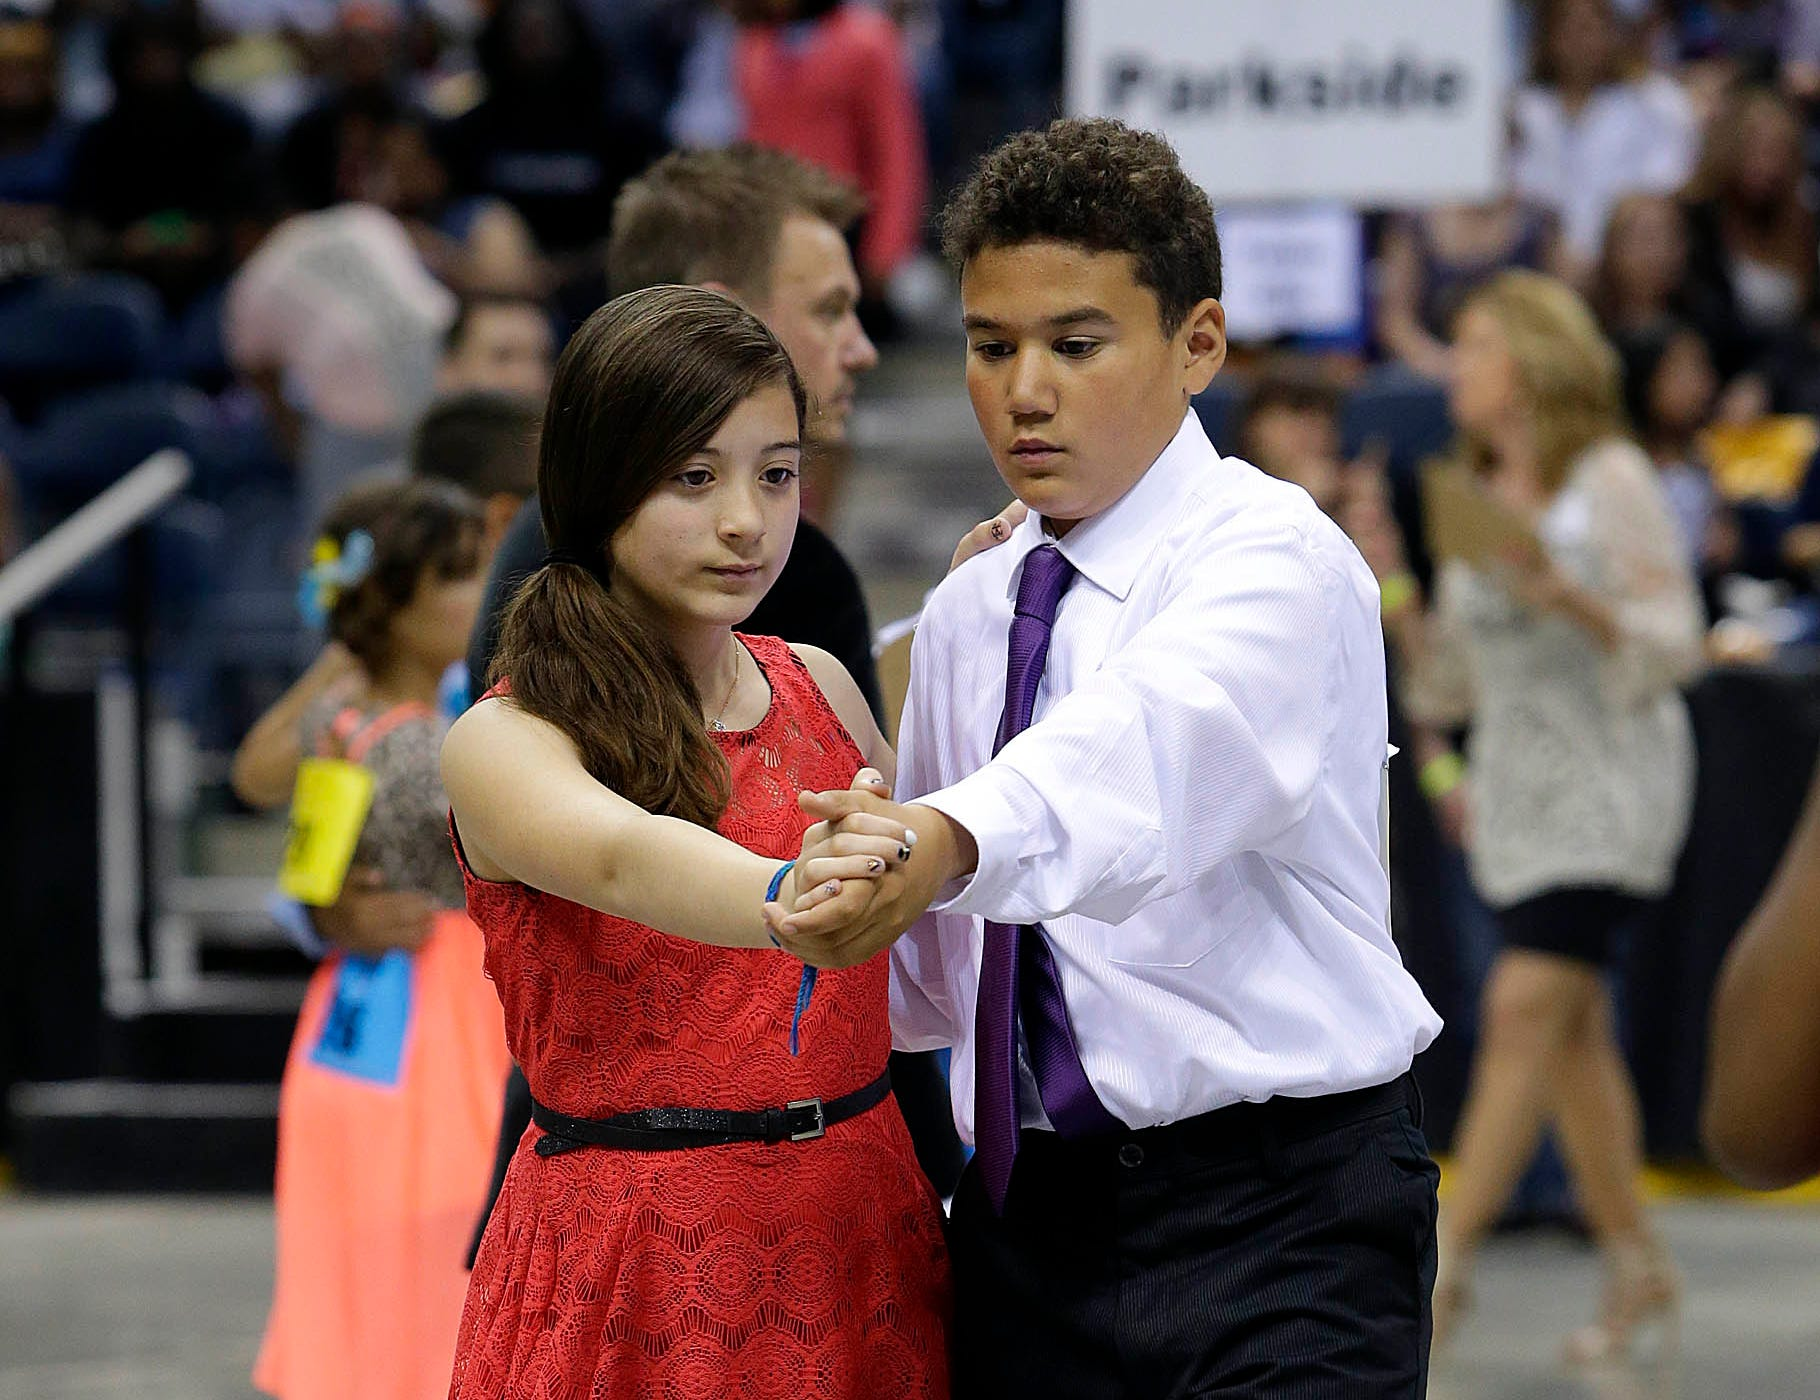 2015: Sophia Lopez and Eamon Bridges, from MPS Hartford University School, join about 2,000 local students from 45 area schools in the annual Mad Hot Ballroom and Tap competition at the Bradley Center.